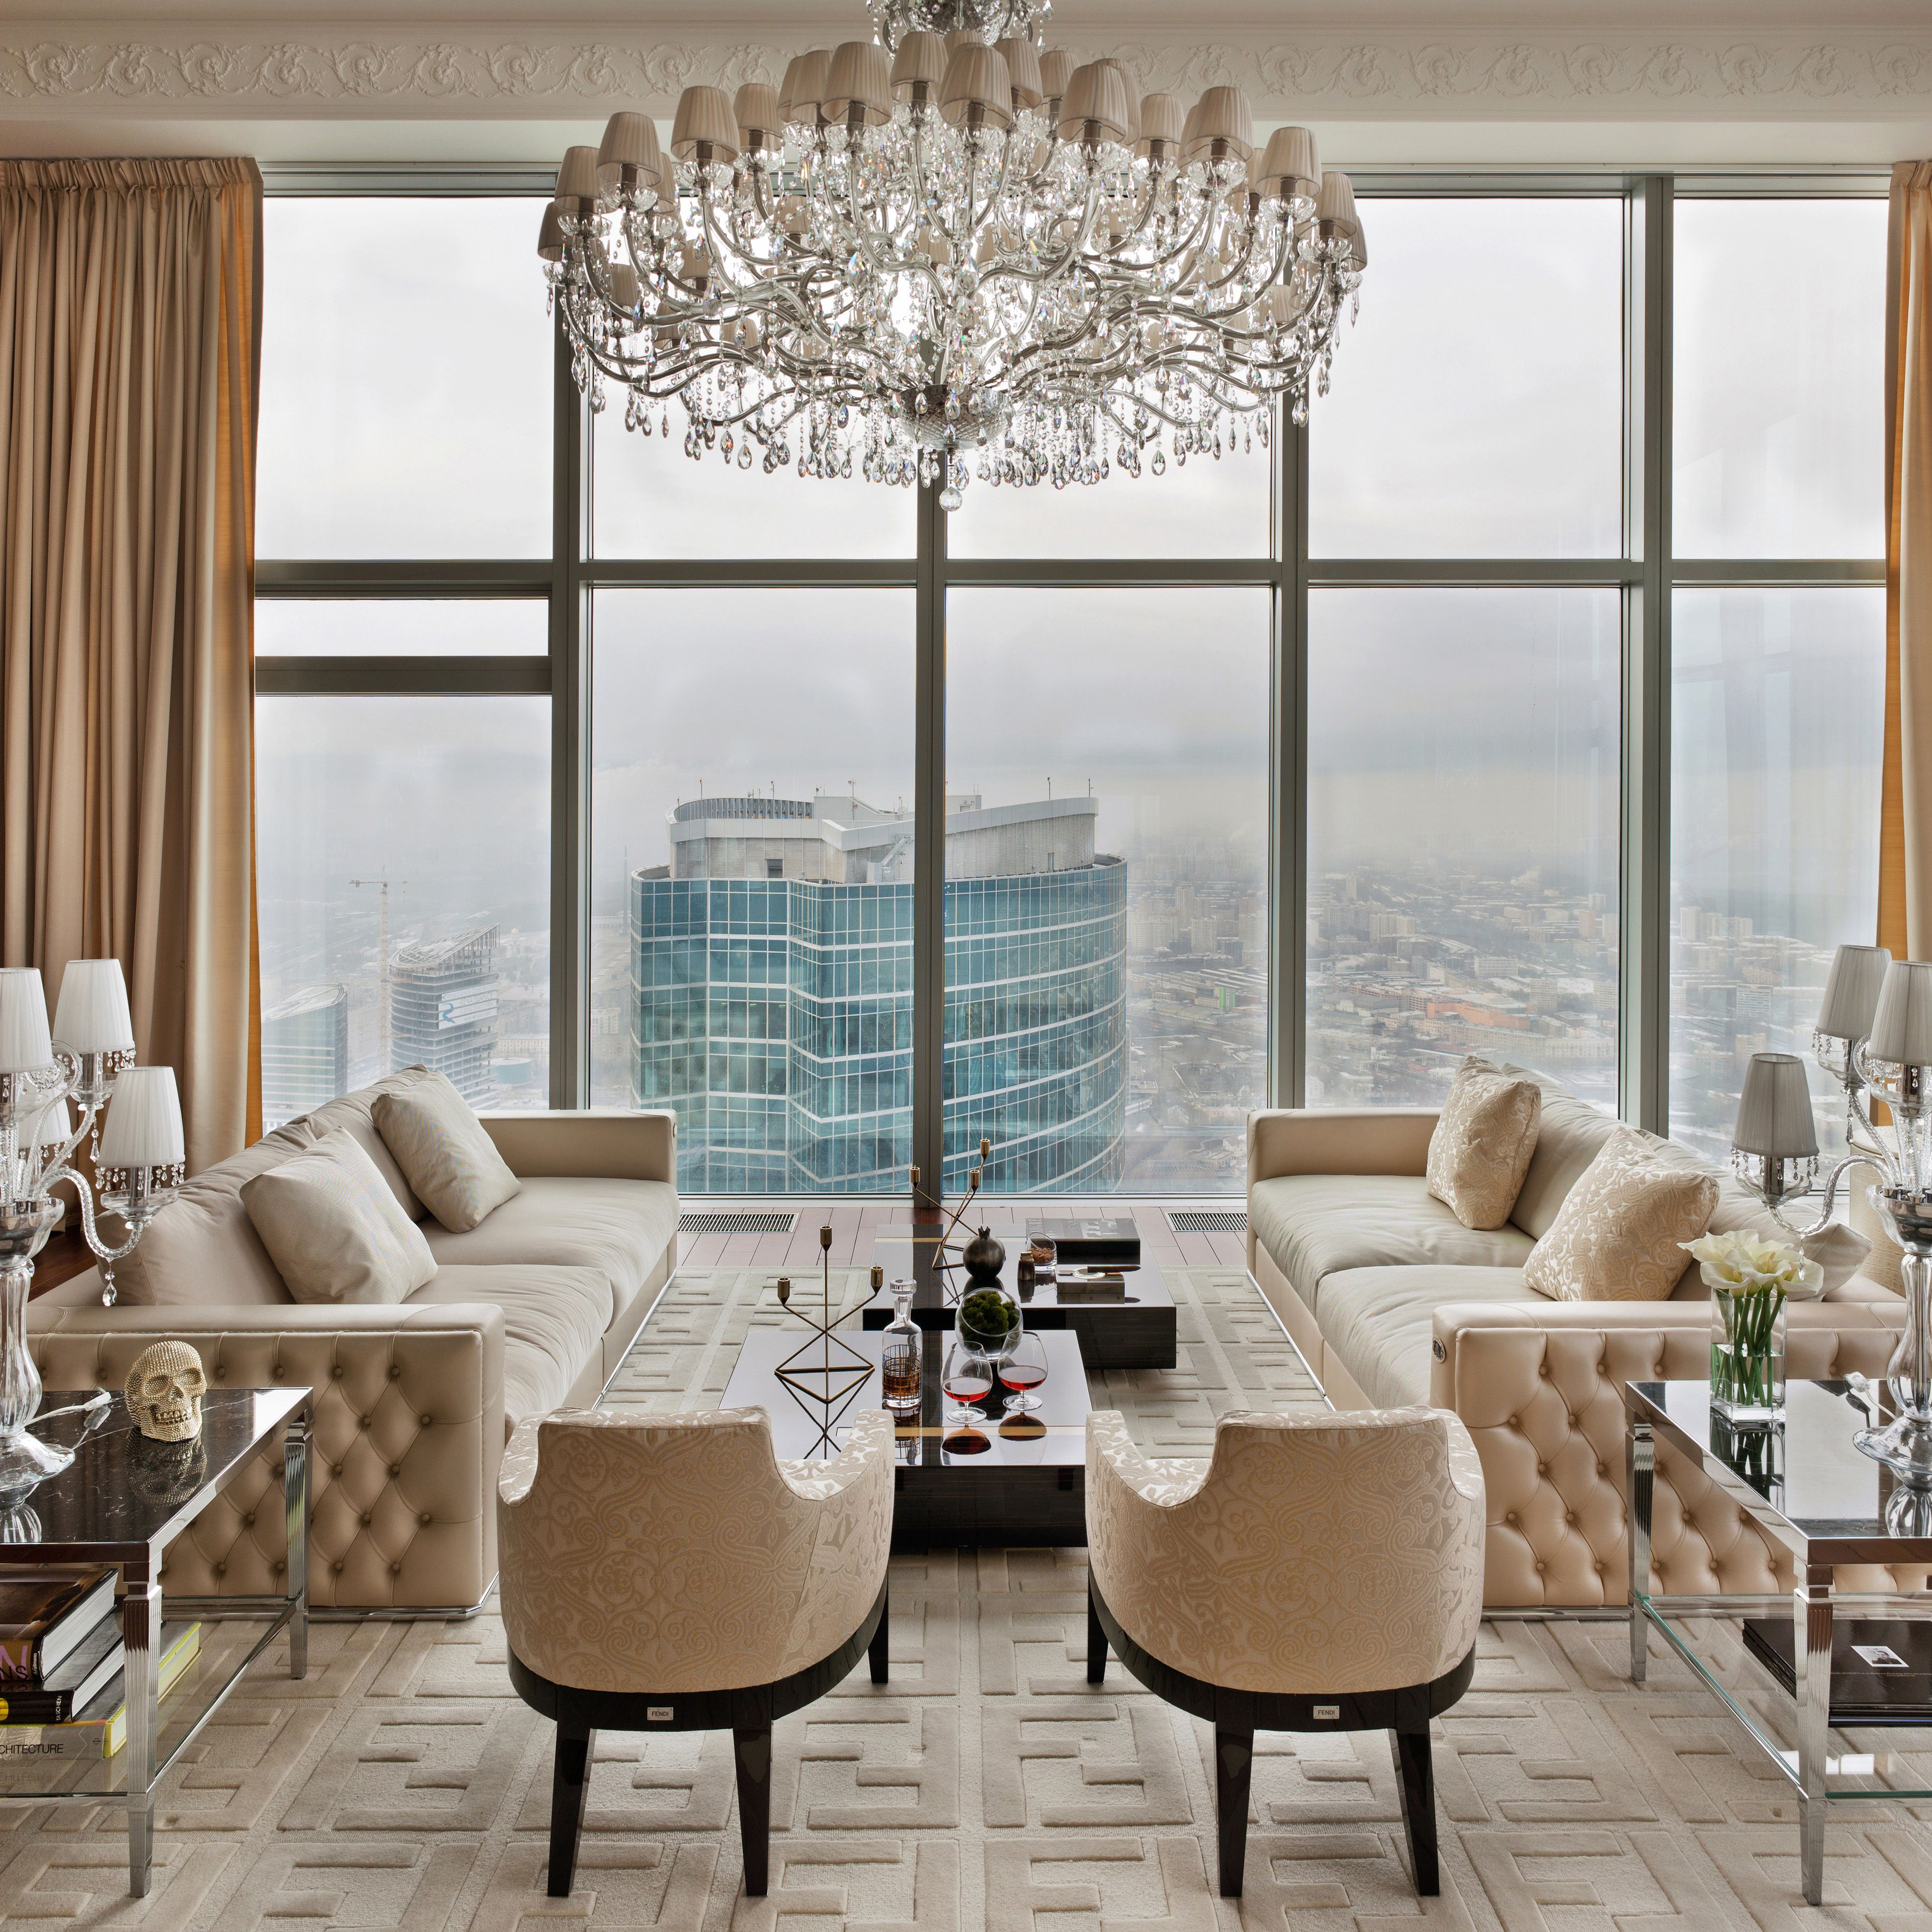 Pin By Akchurin New York On Luxury Penthouse